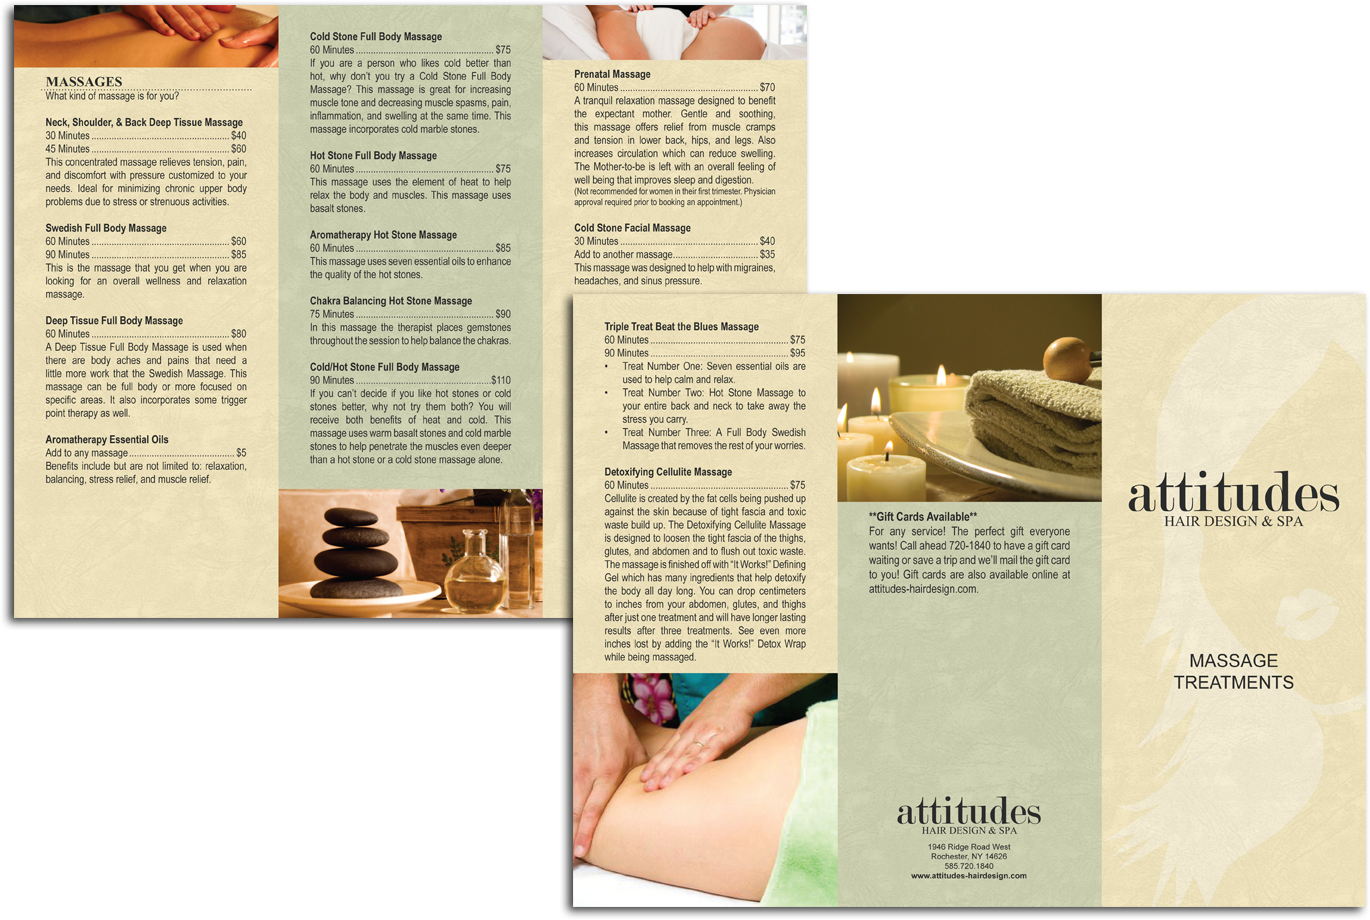 Spa Brochure S Pictures to Pin PinsDaddy – Massage Brochure